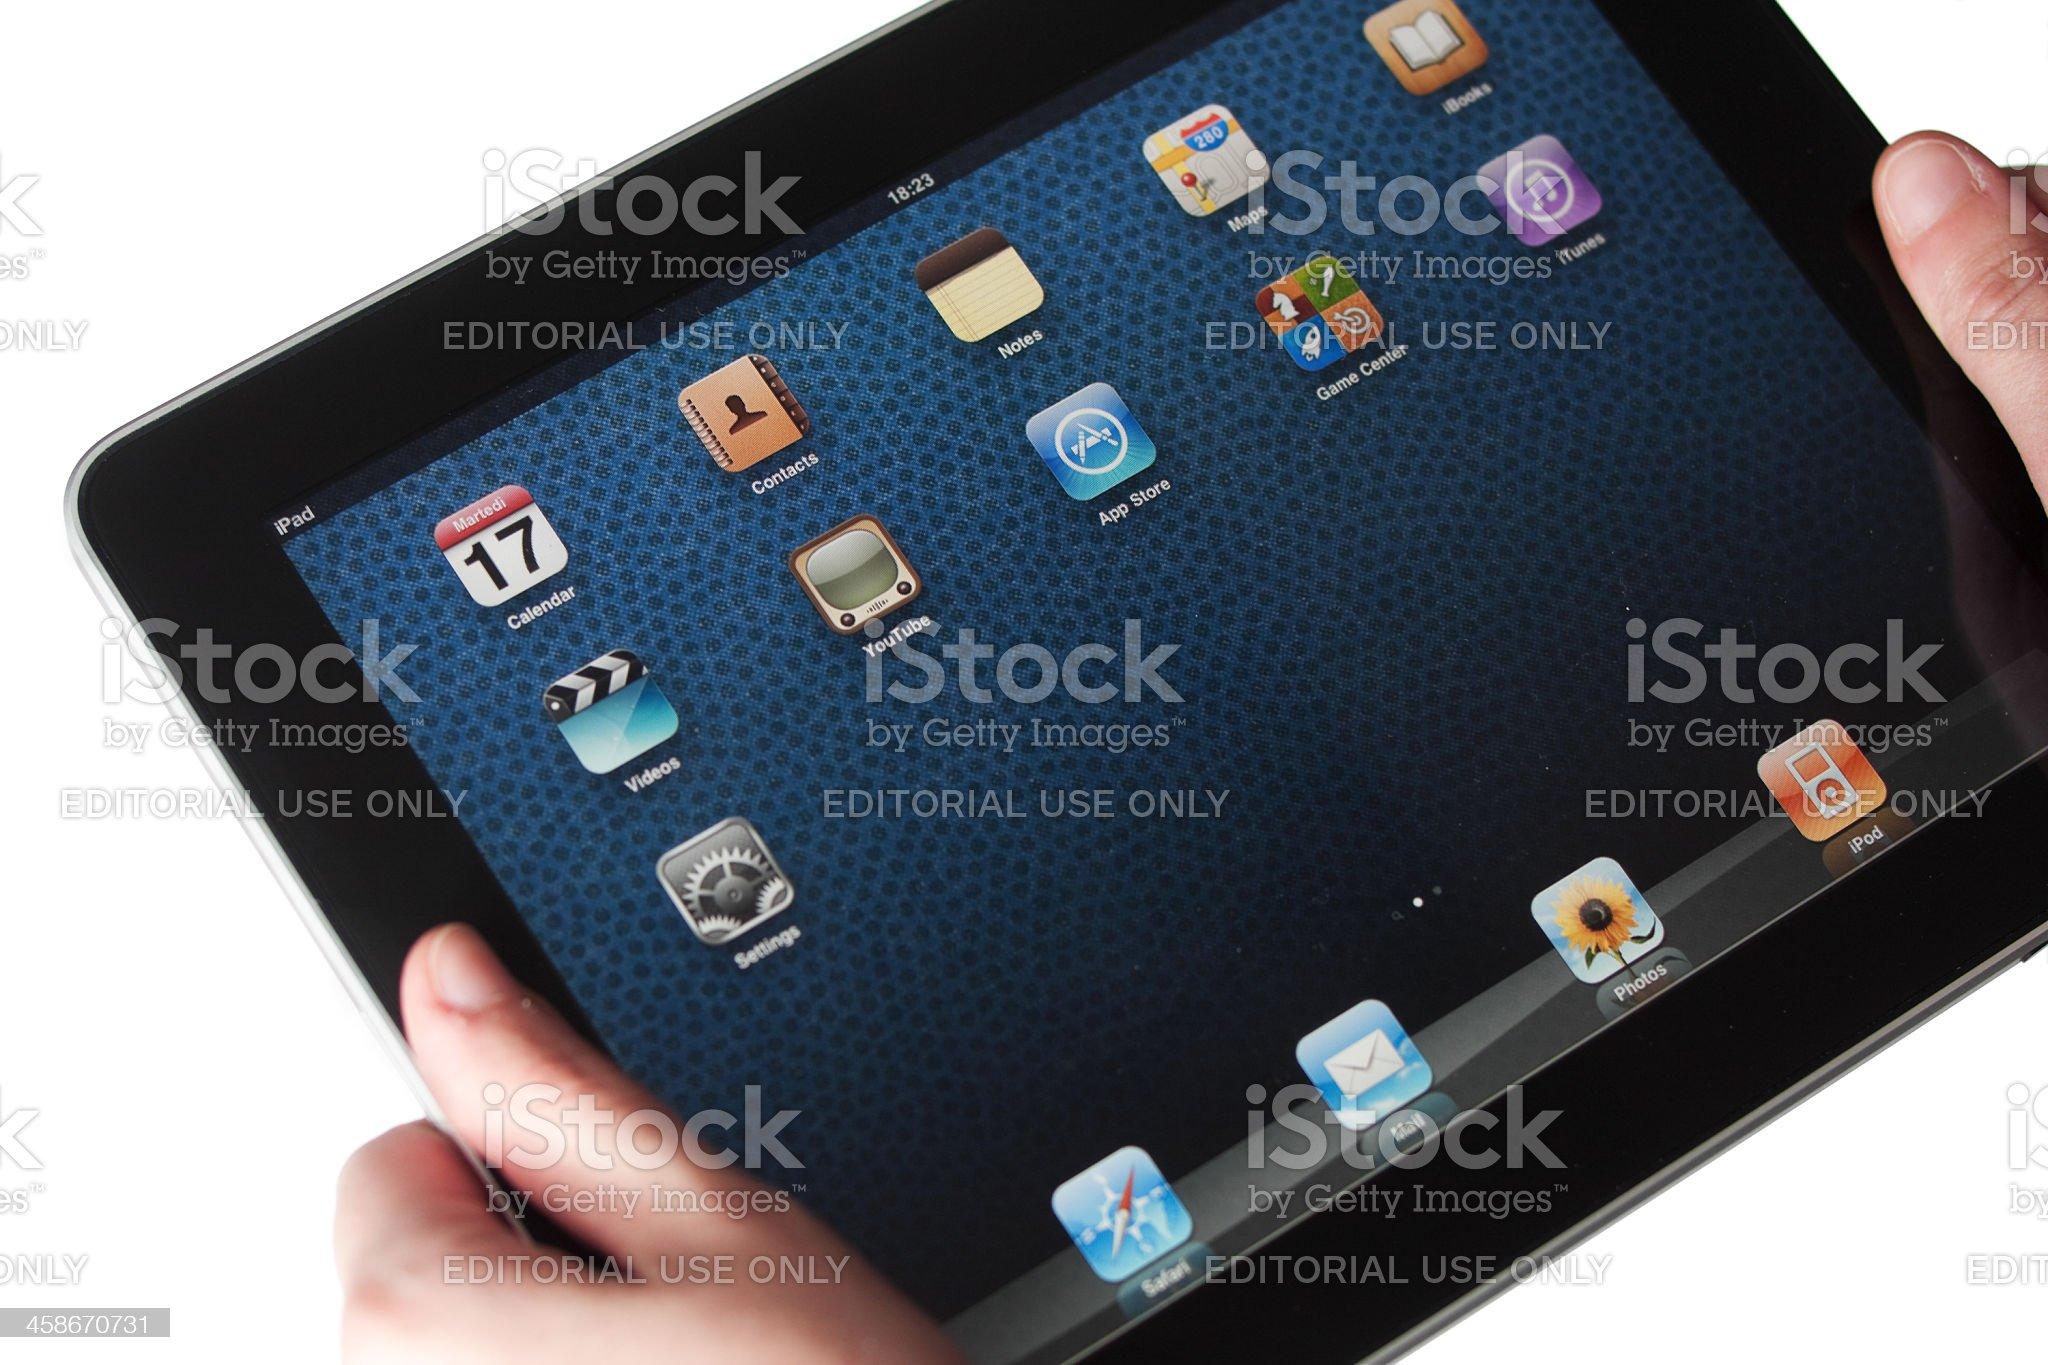 iPad by Apple Computers royalty-free stock photo